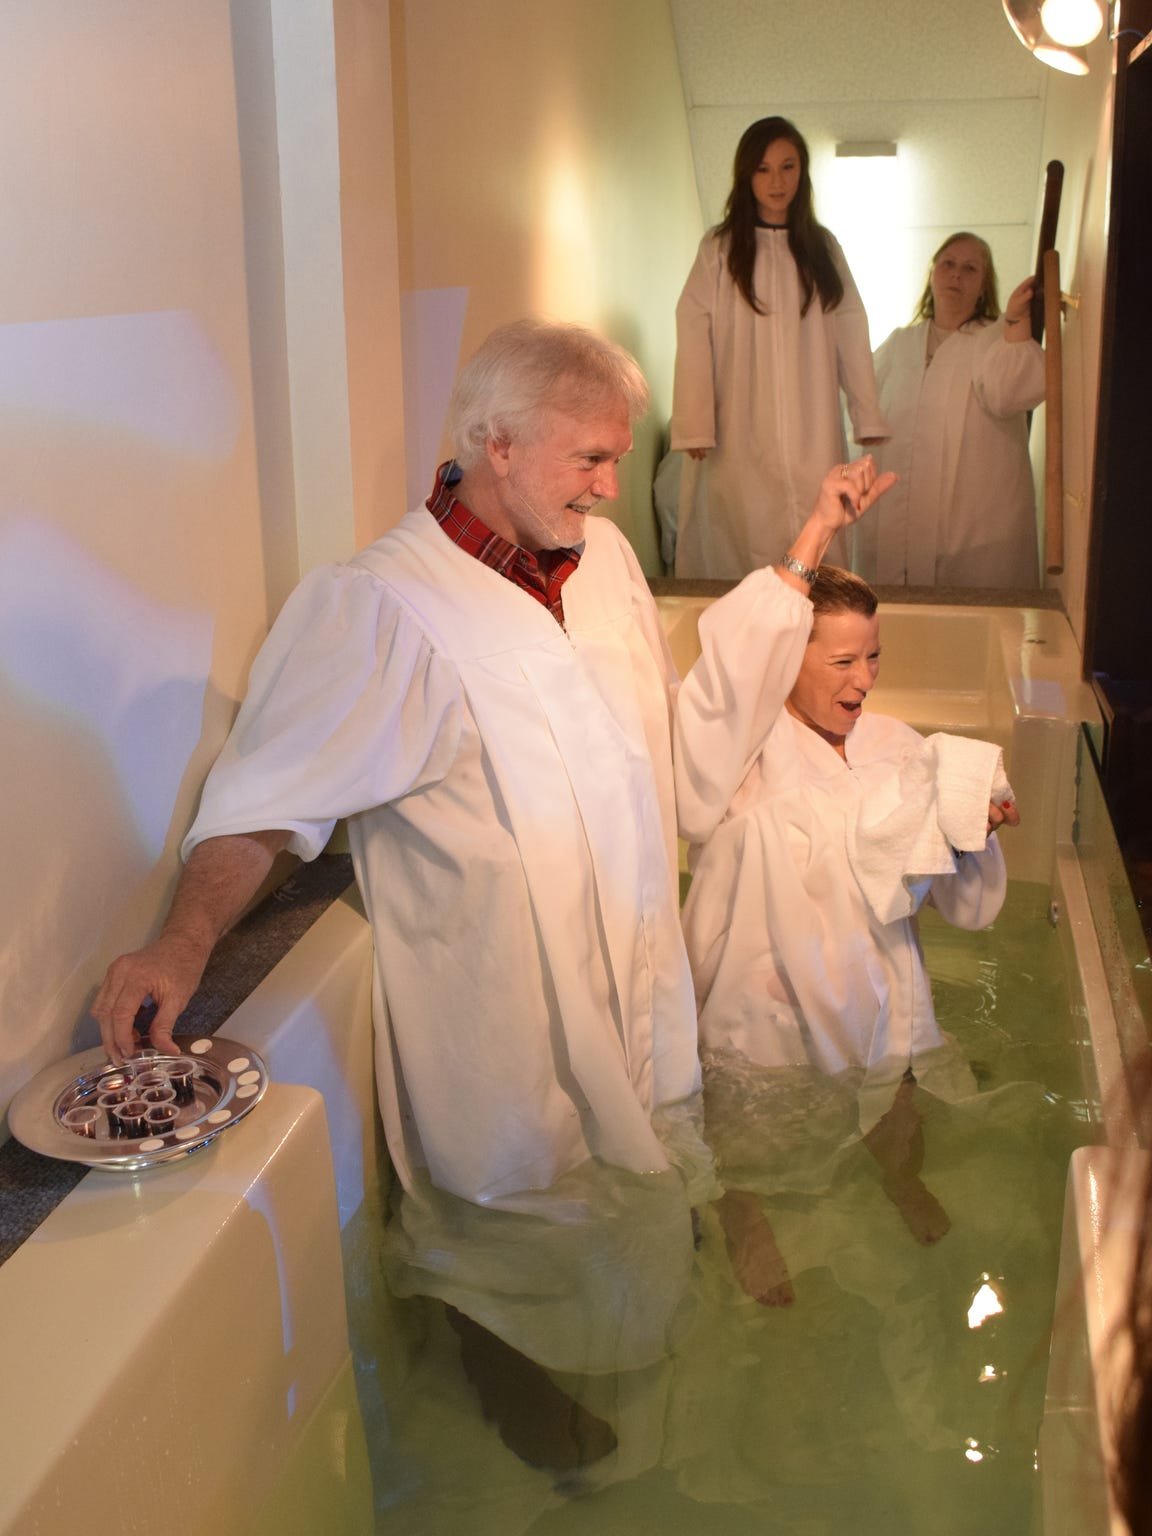 Shelia Lowery (right) celebrates after being baptized by Journey Church pastor James Greer (left) Sunday. She was the 100th person baptized at the church this year.